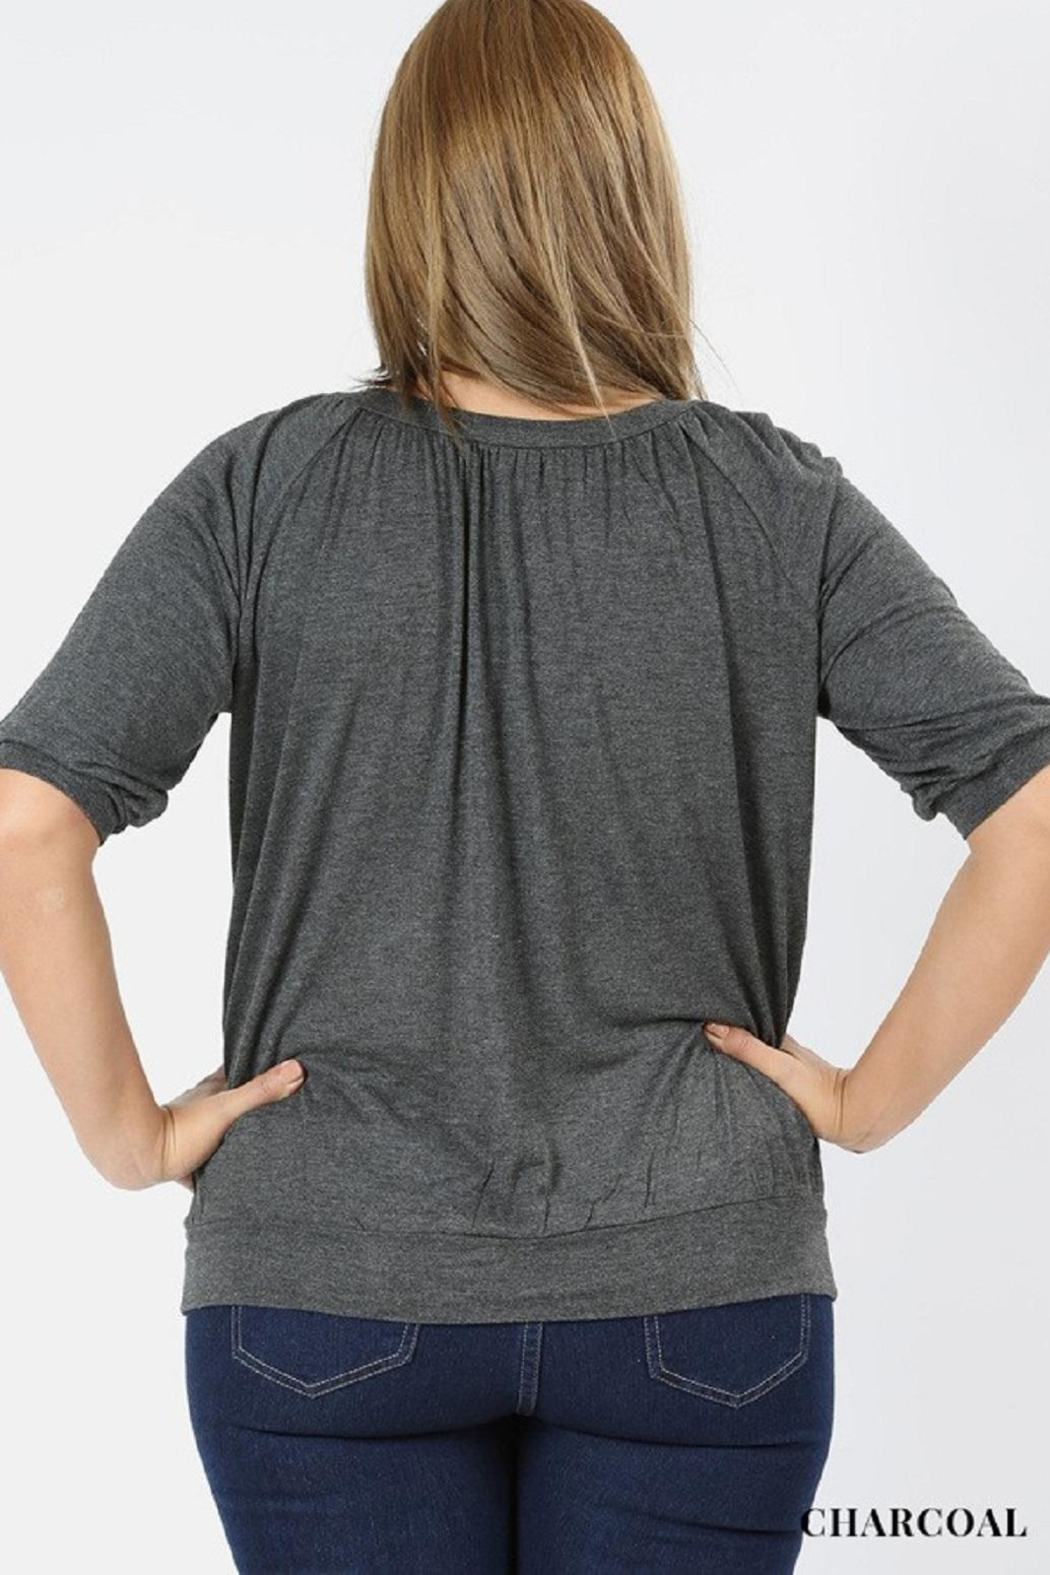 Zenana Charcoal Plus-Size Top - Front Full Image